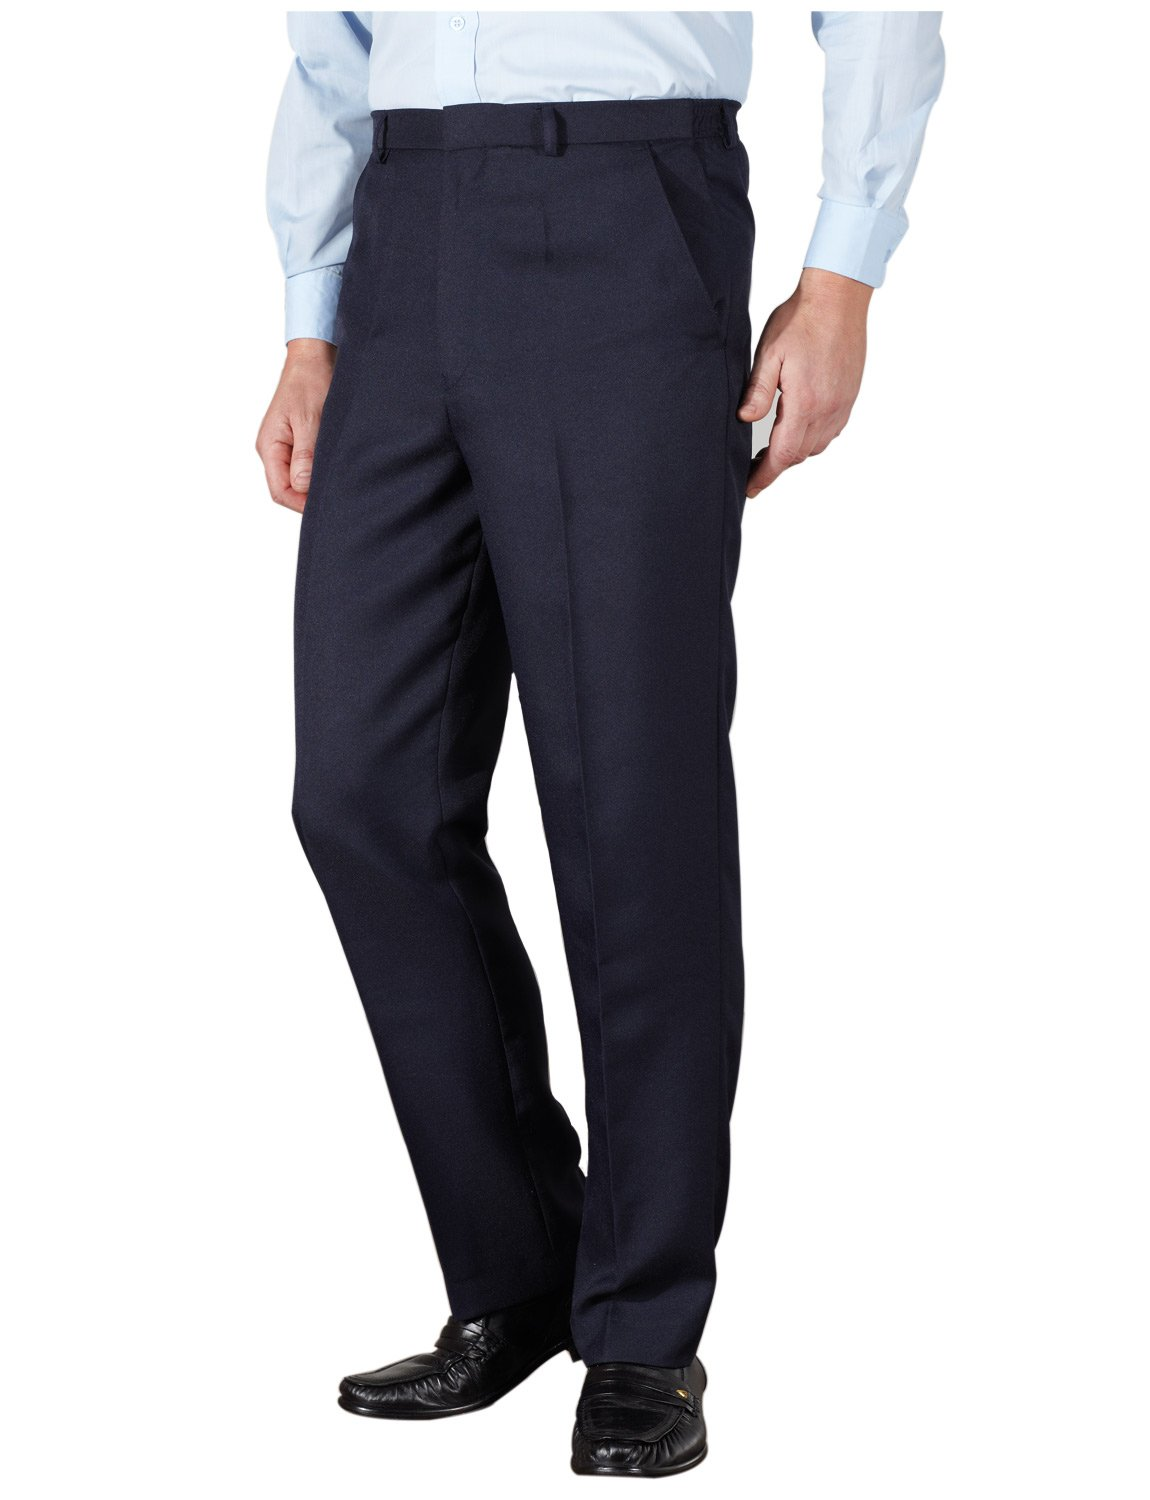 Chums Mens Quality Formal Elasticated Trousers